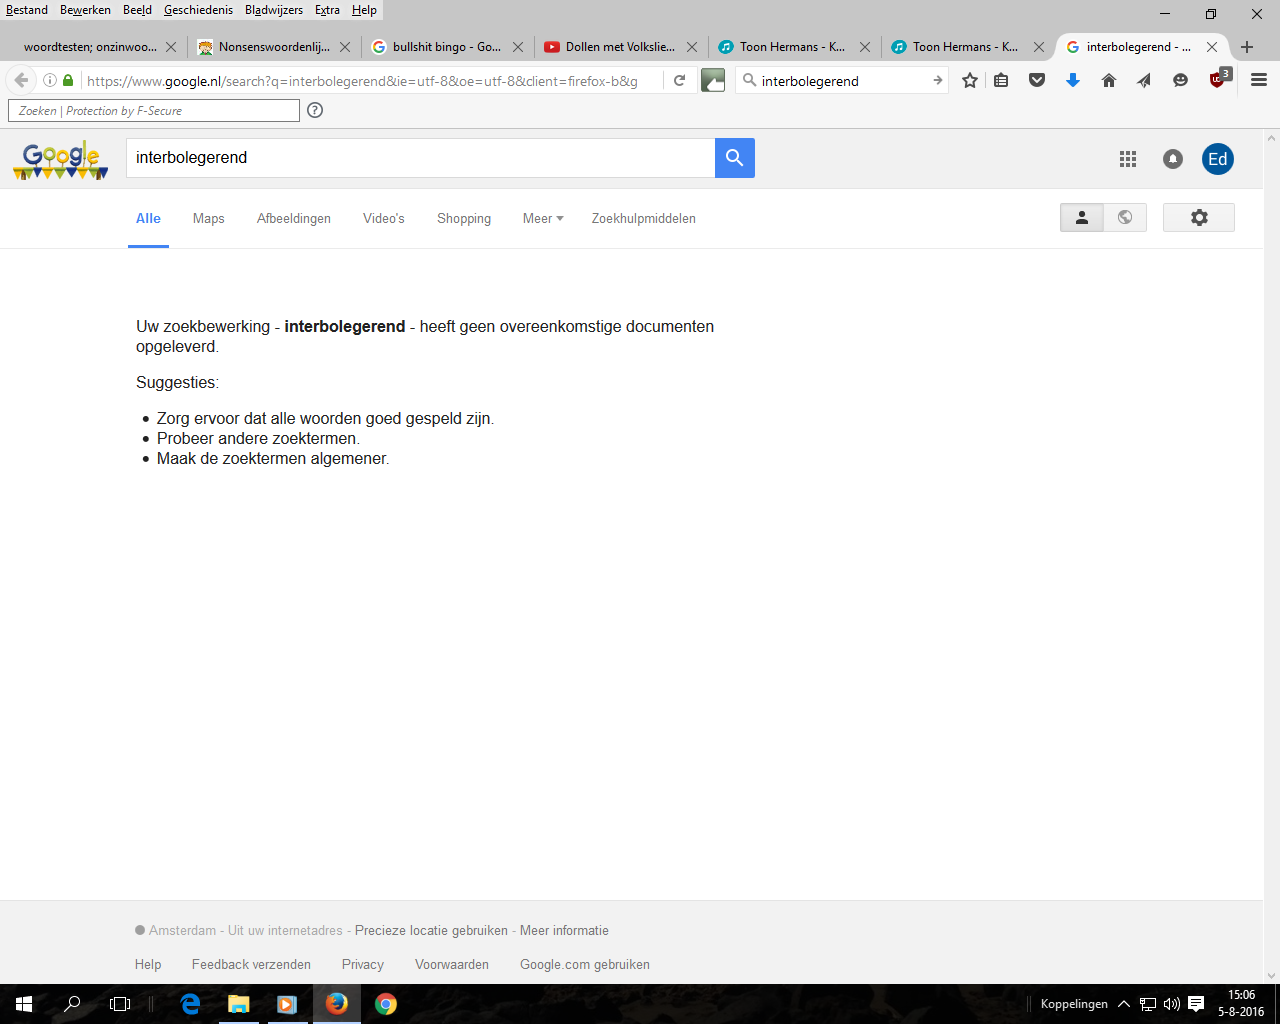 Interbolegerend Search Results